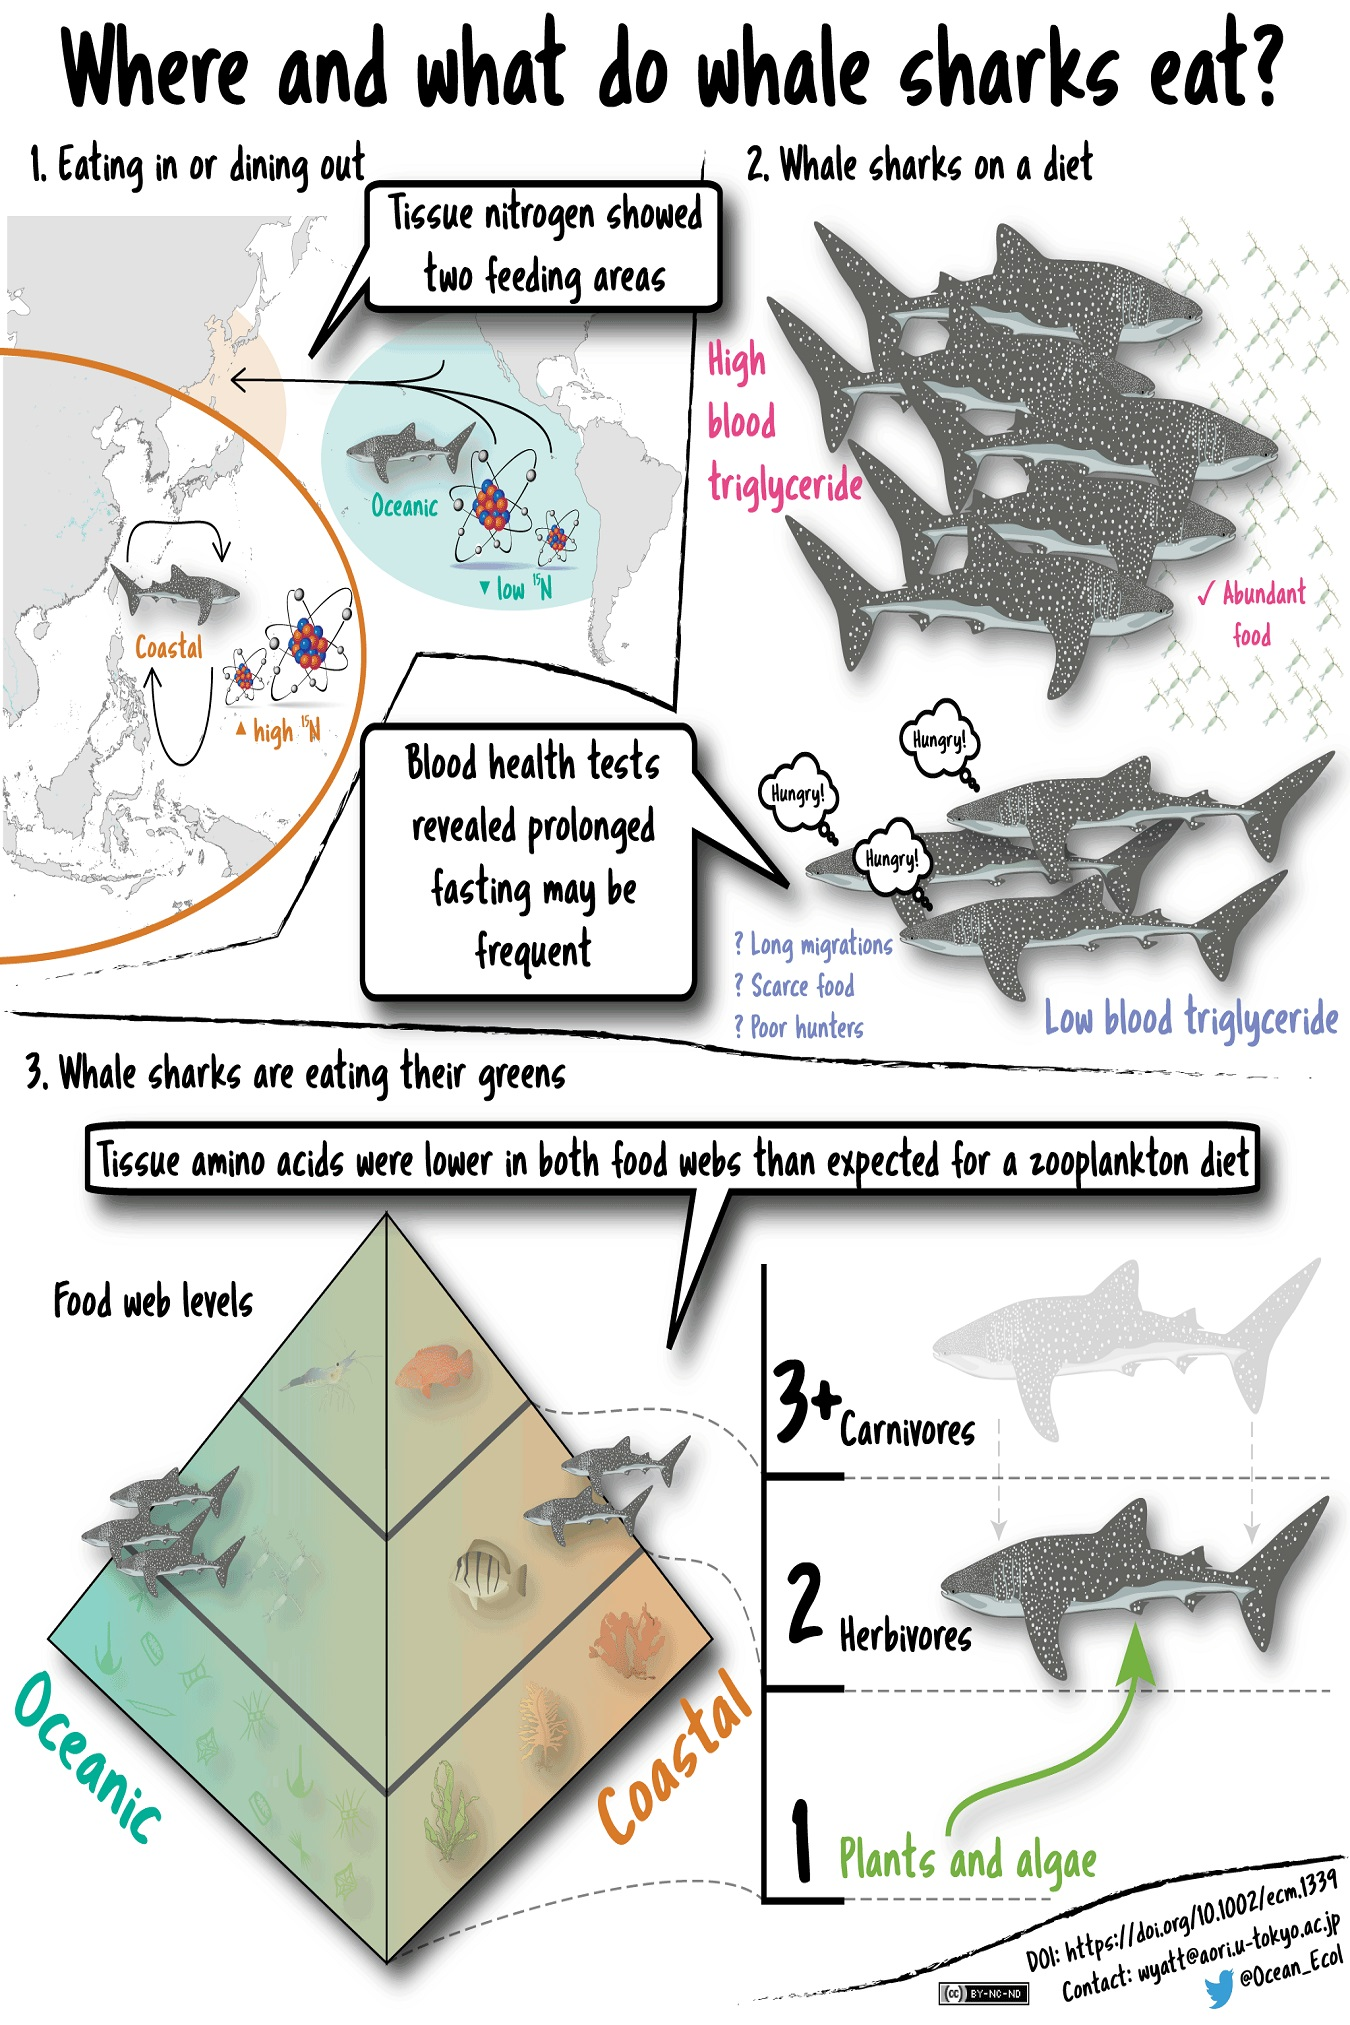 Cartoon showing whale shark migration maps and diet graphs.